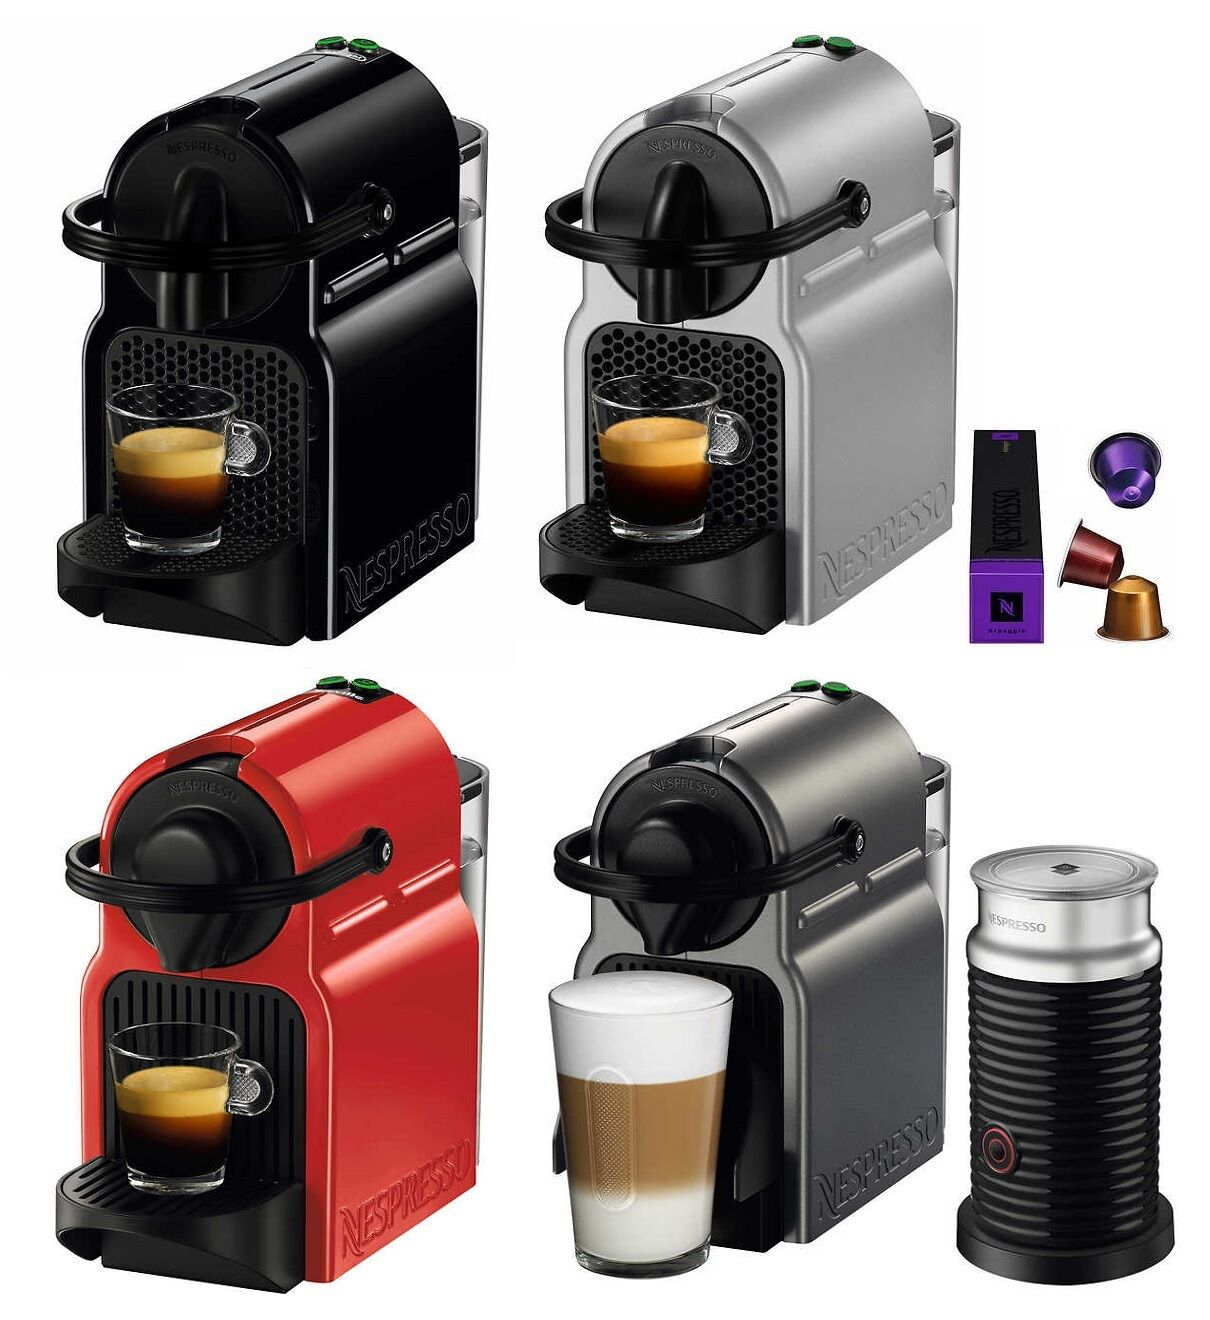 Nespresso Inissia Espresso Maker Brewer w/ Optional 16 Capsu